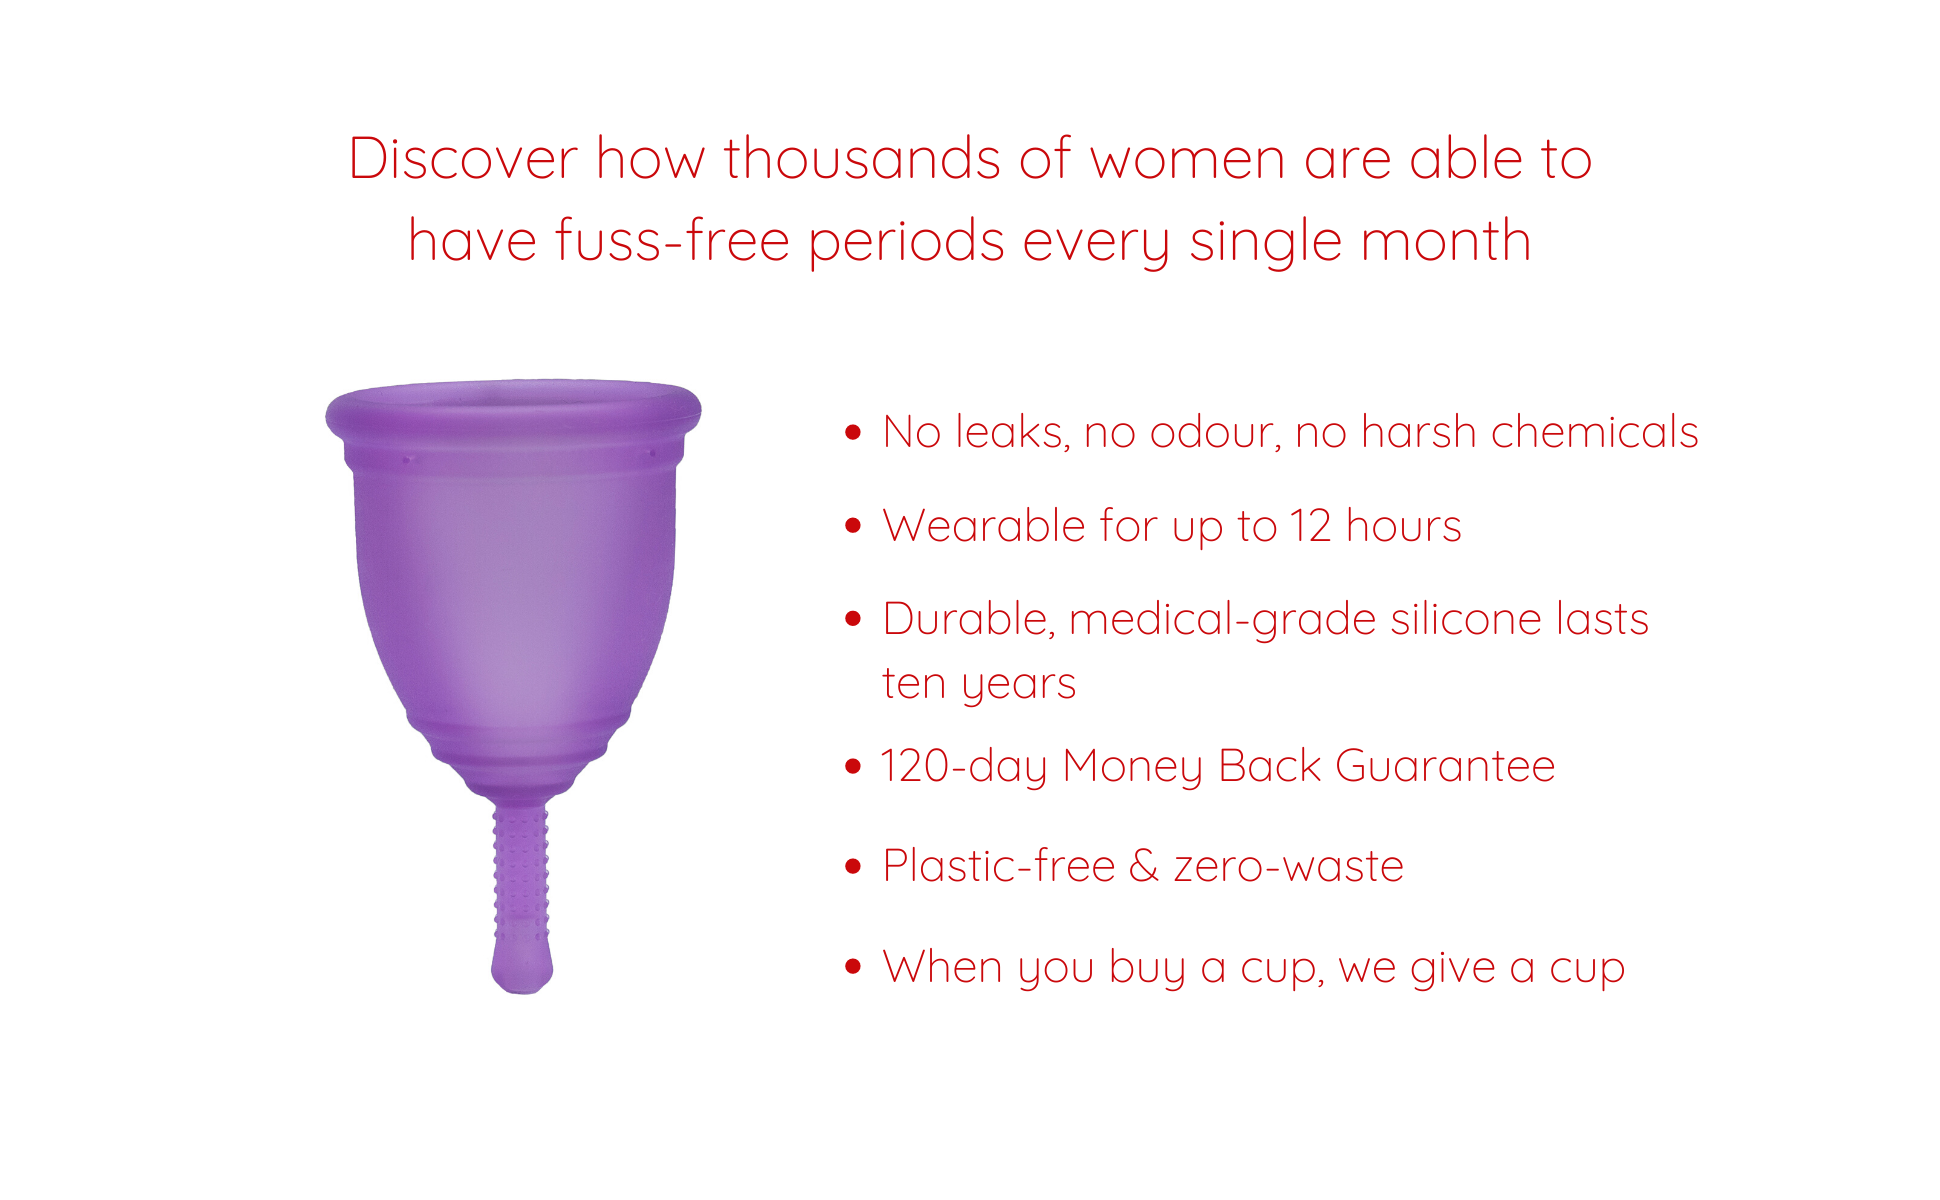 Ruby Cup benefits